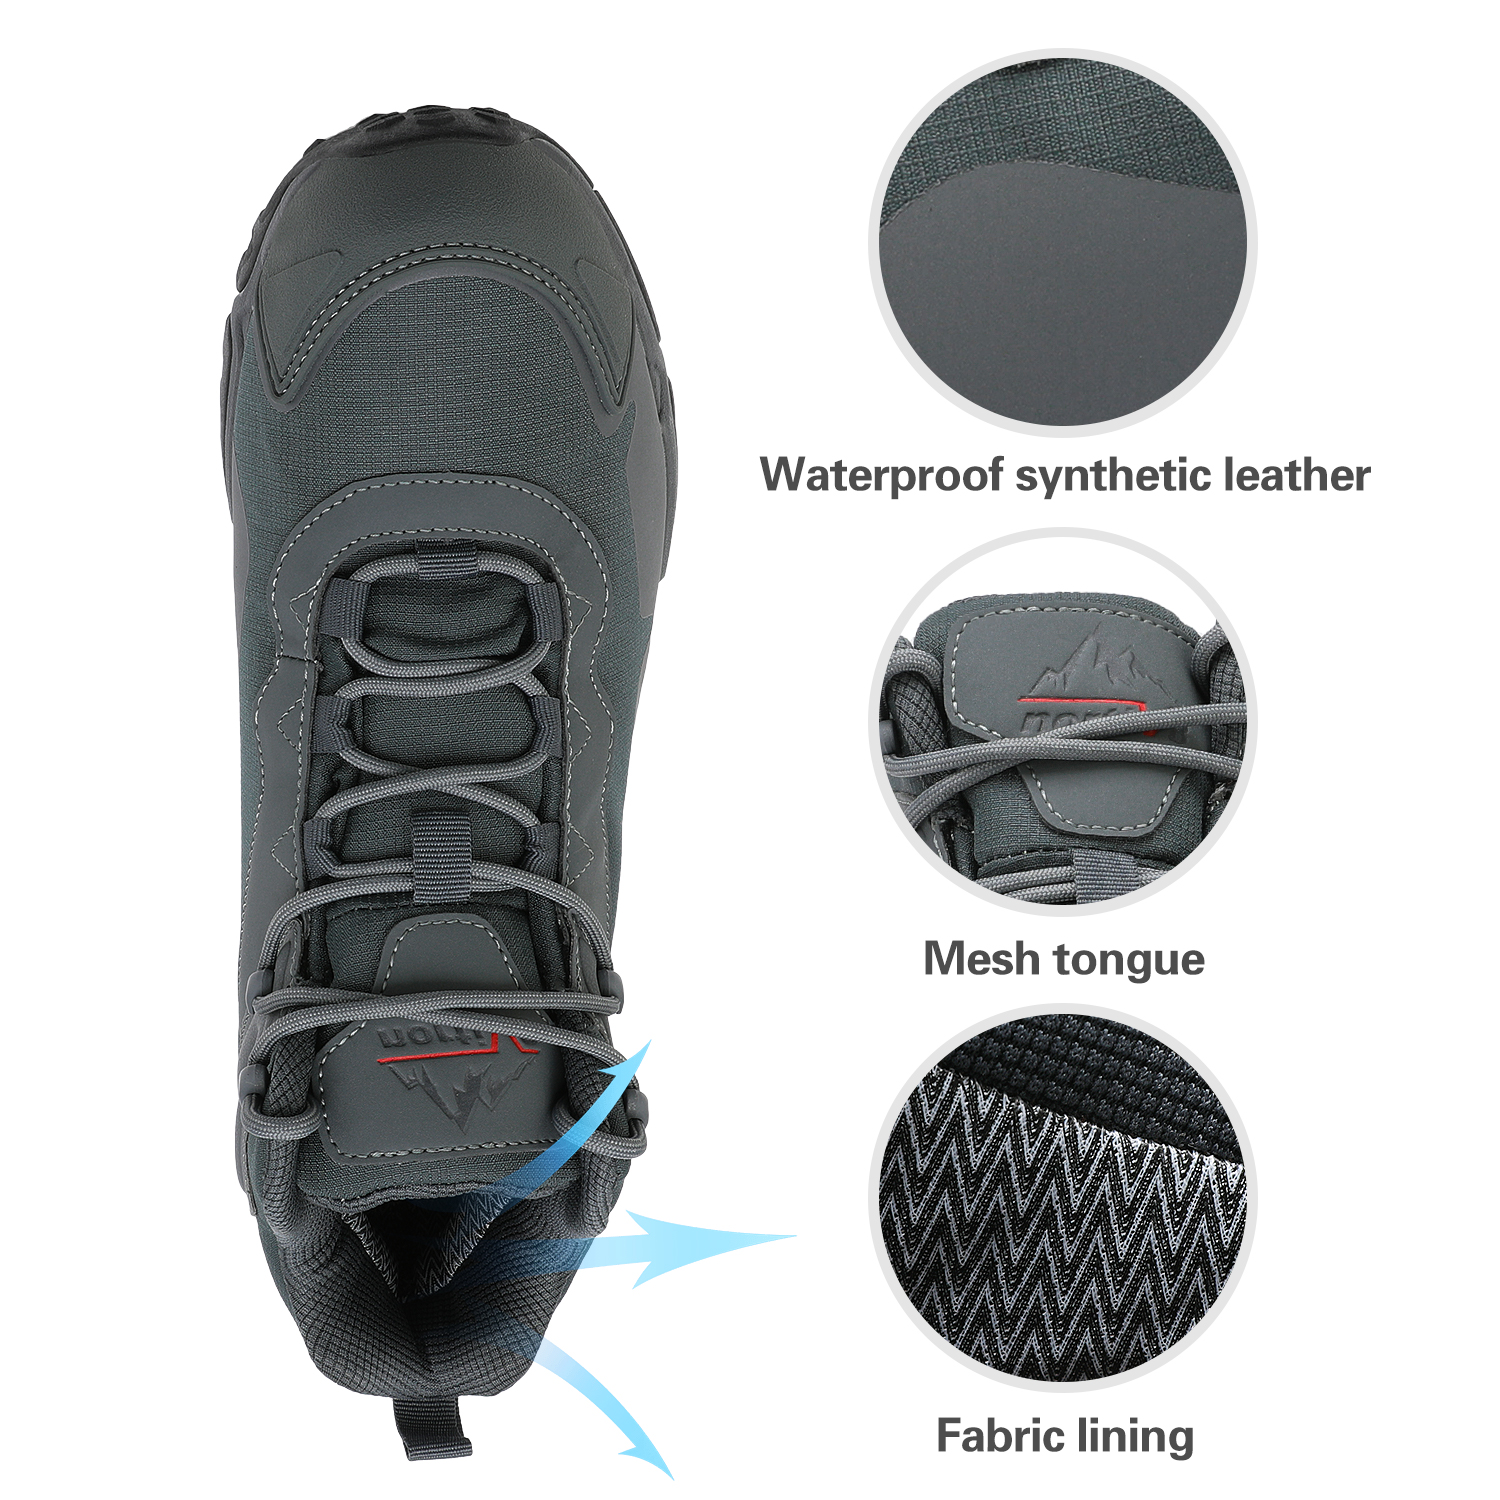 NORTIV-8-Men-039-s-Ankle-Waterproof-Hiking-Boots-Lightweight-Backpacking-Work-Shoes thumbnail 17